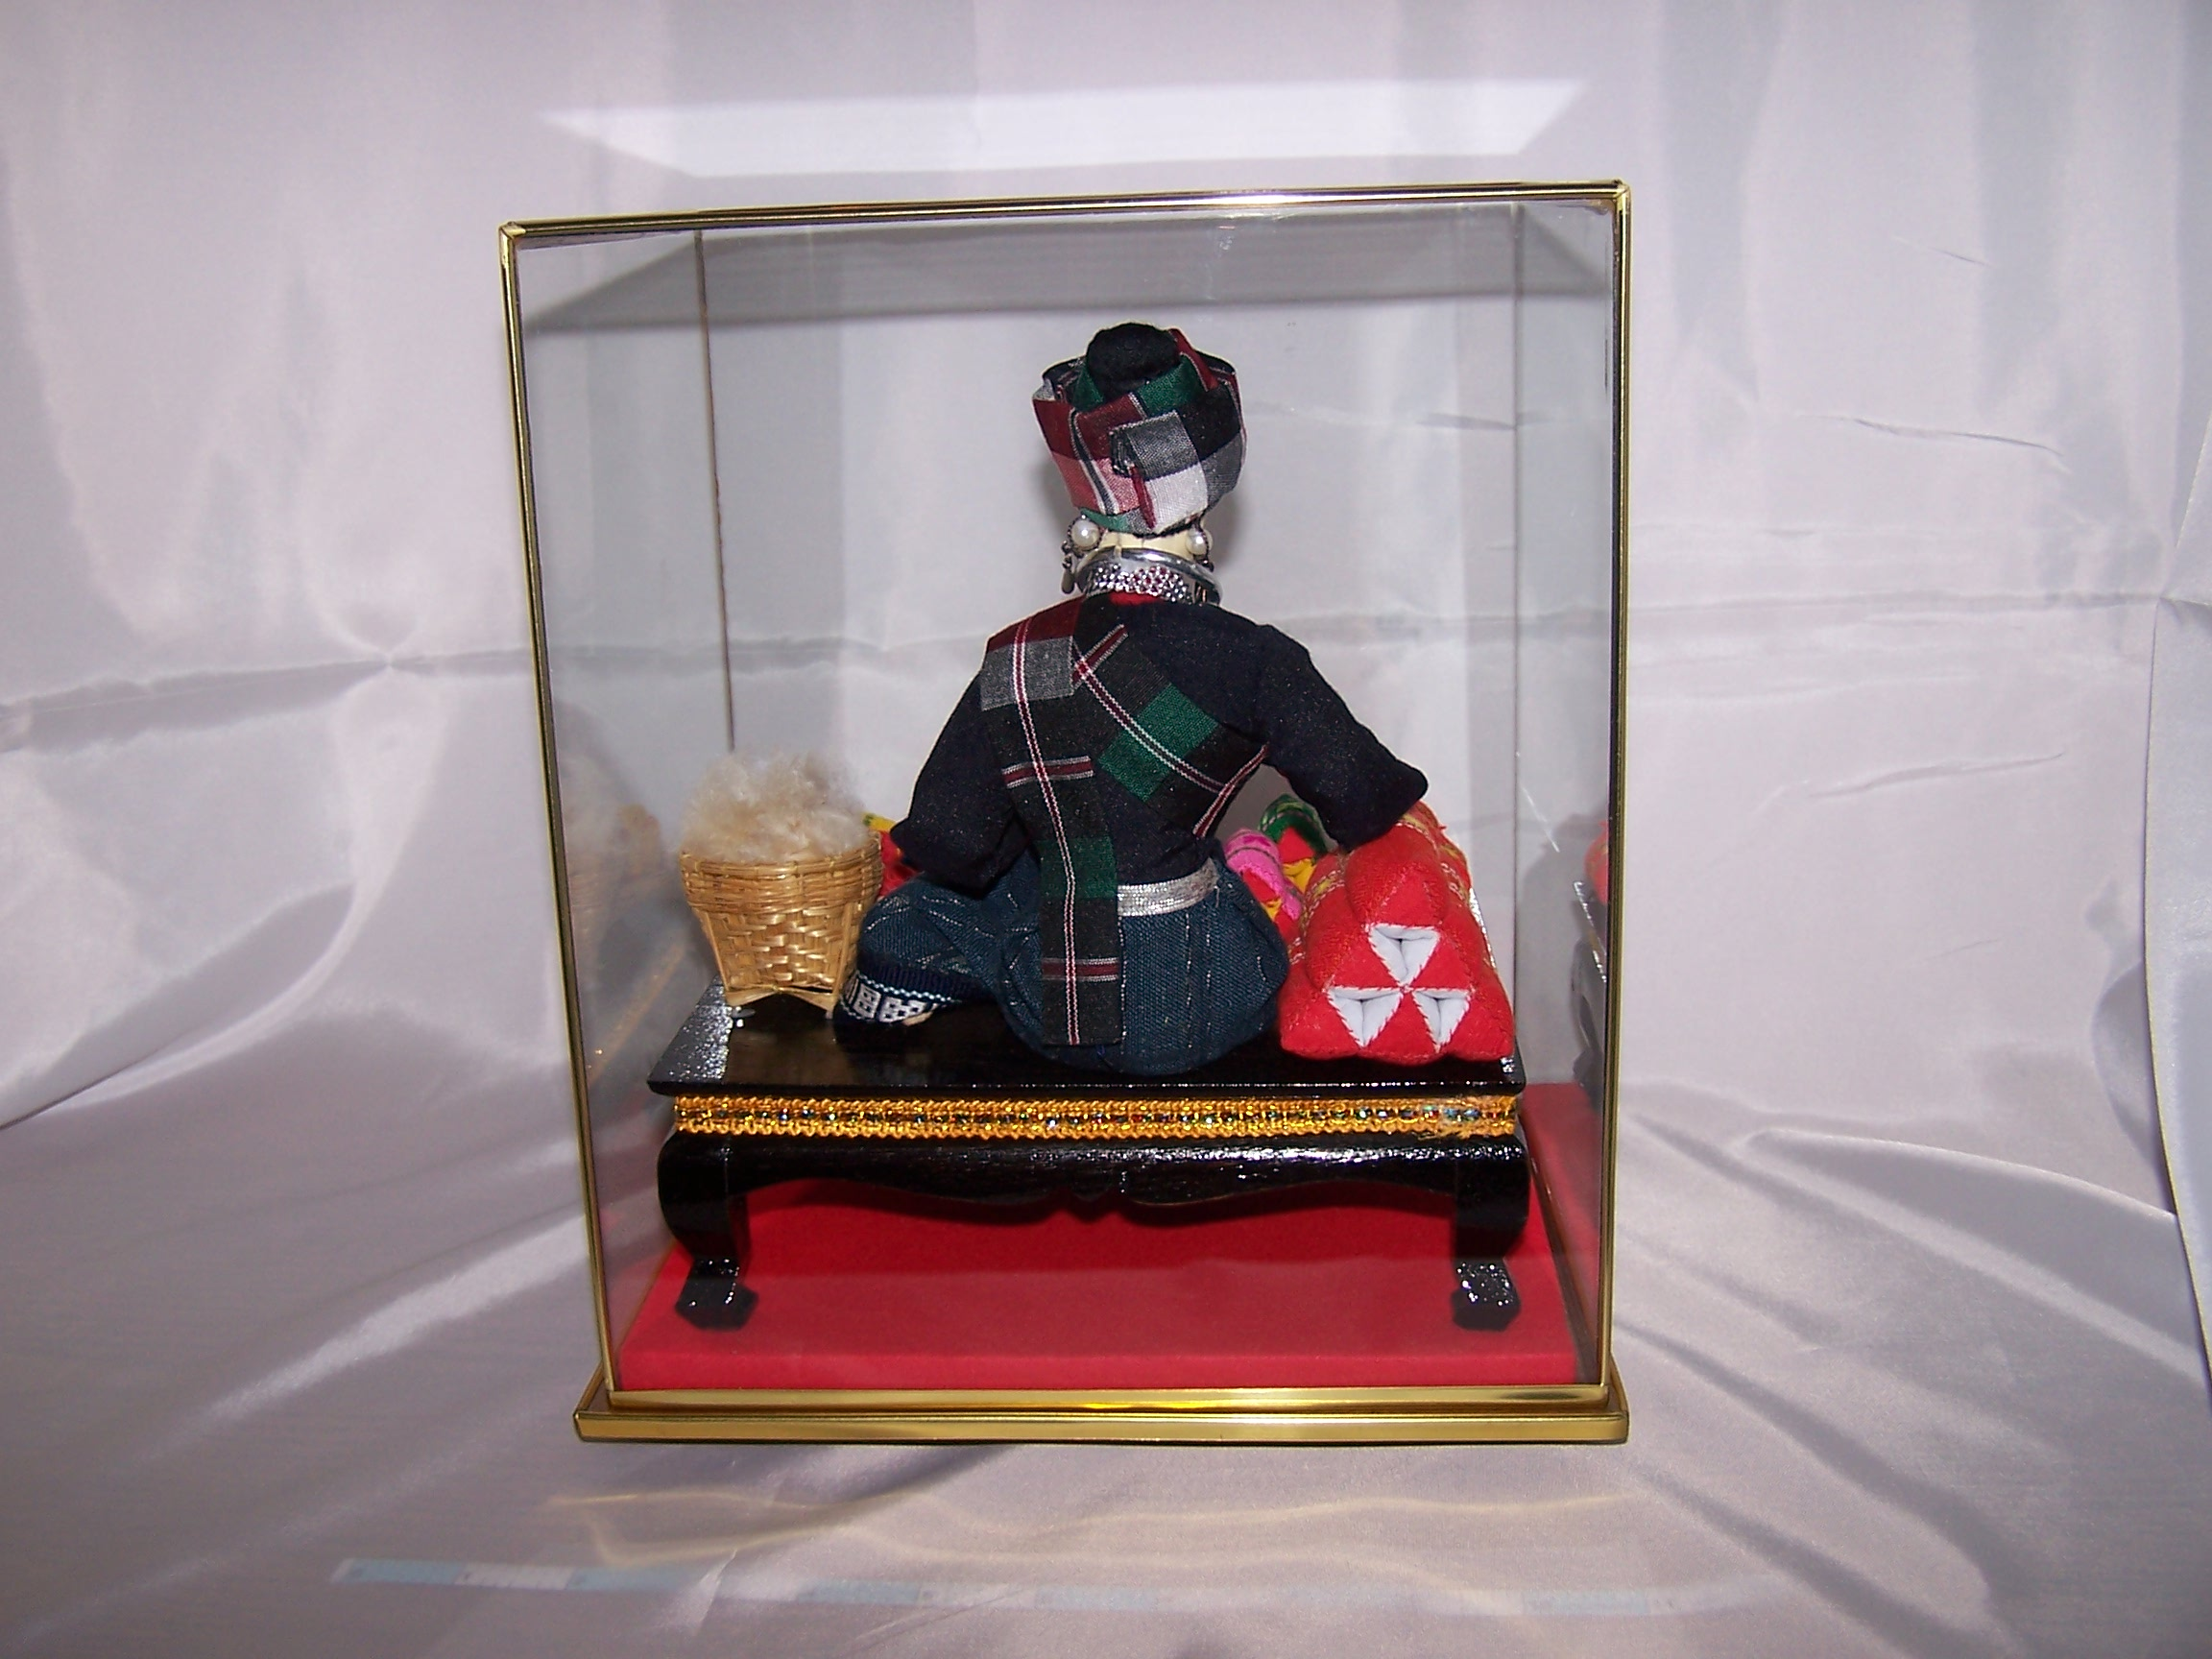 Image 6 of Oriental Seamstress Doll in Case